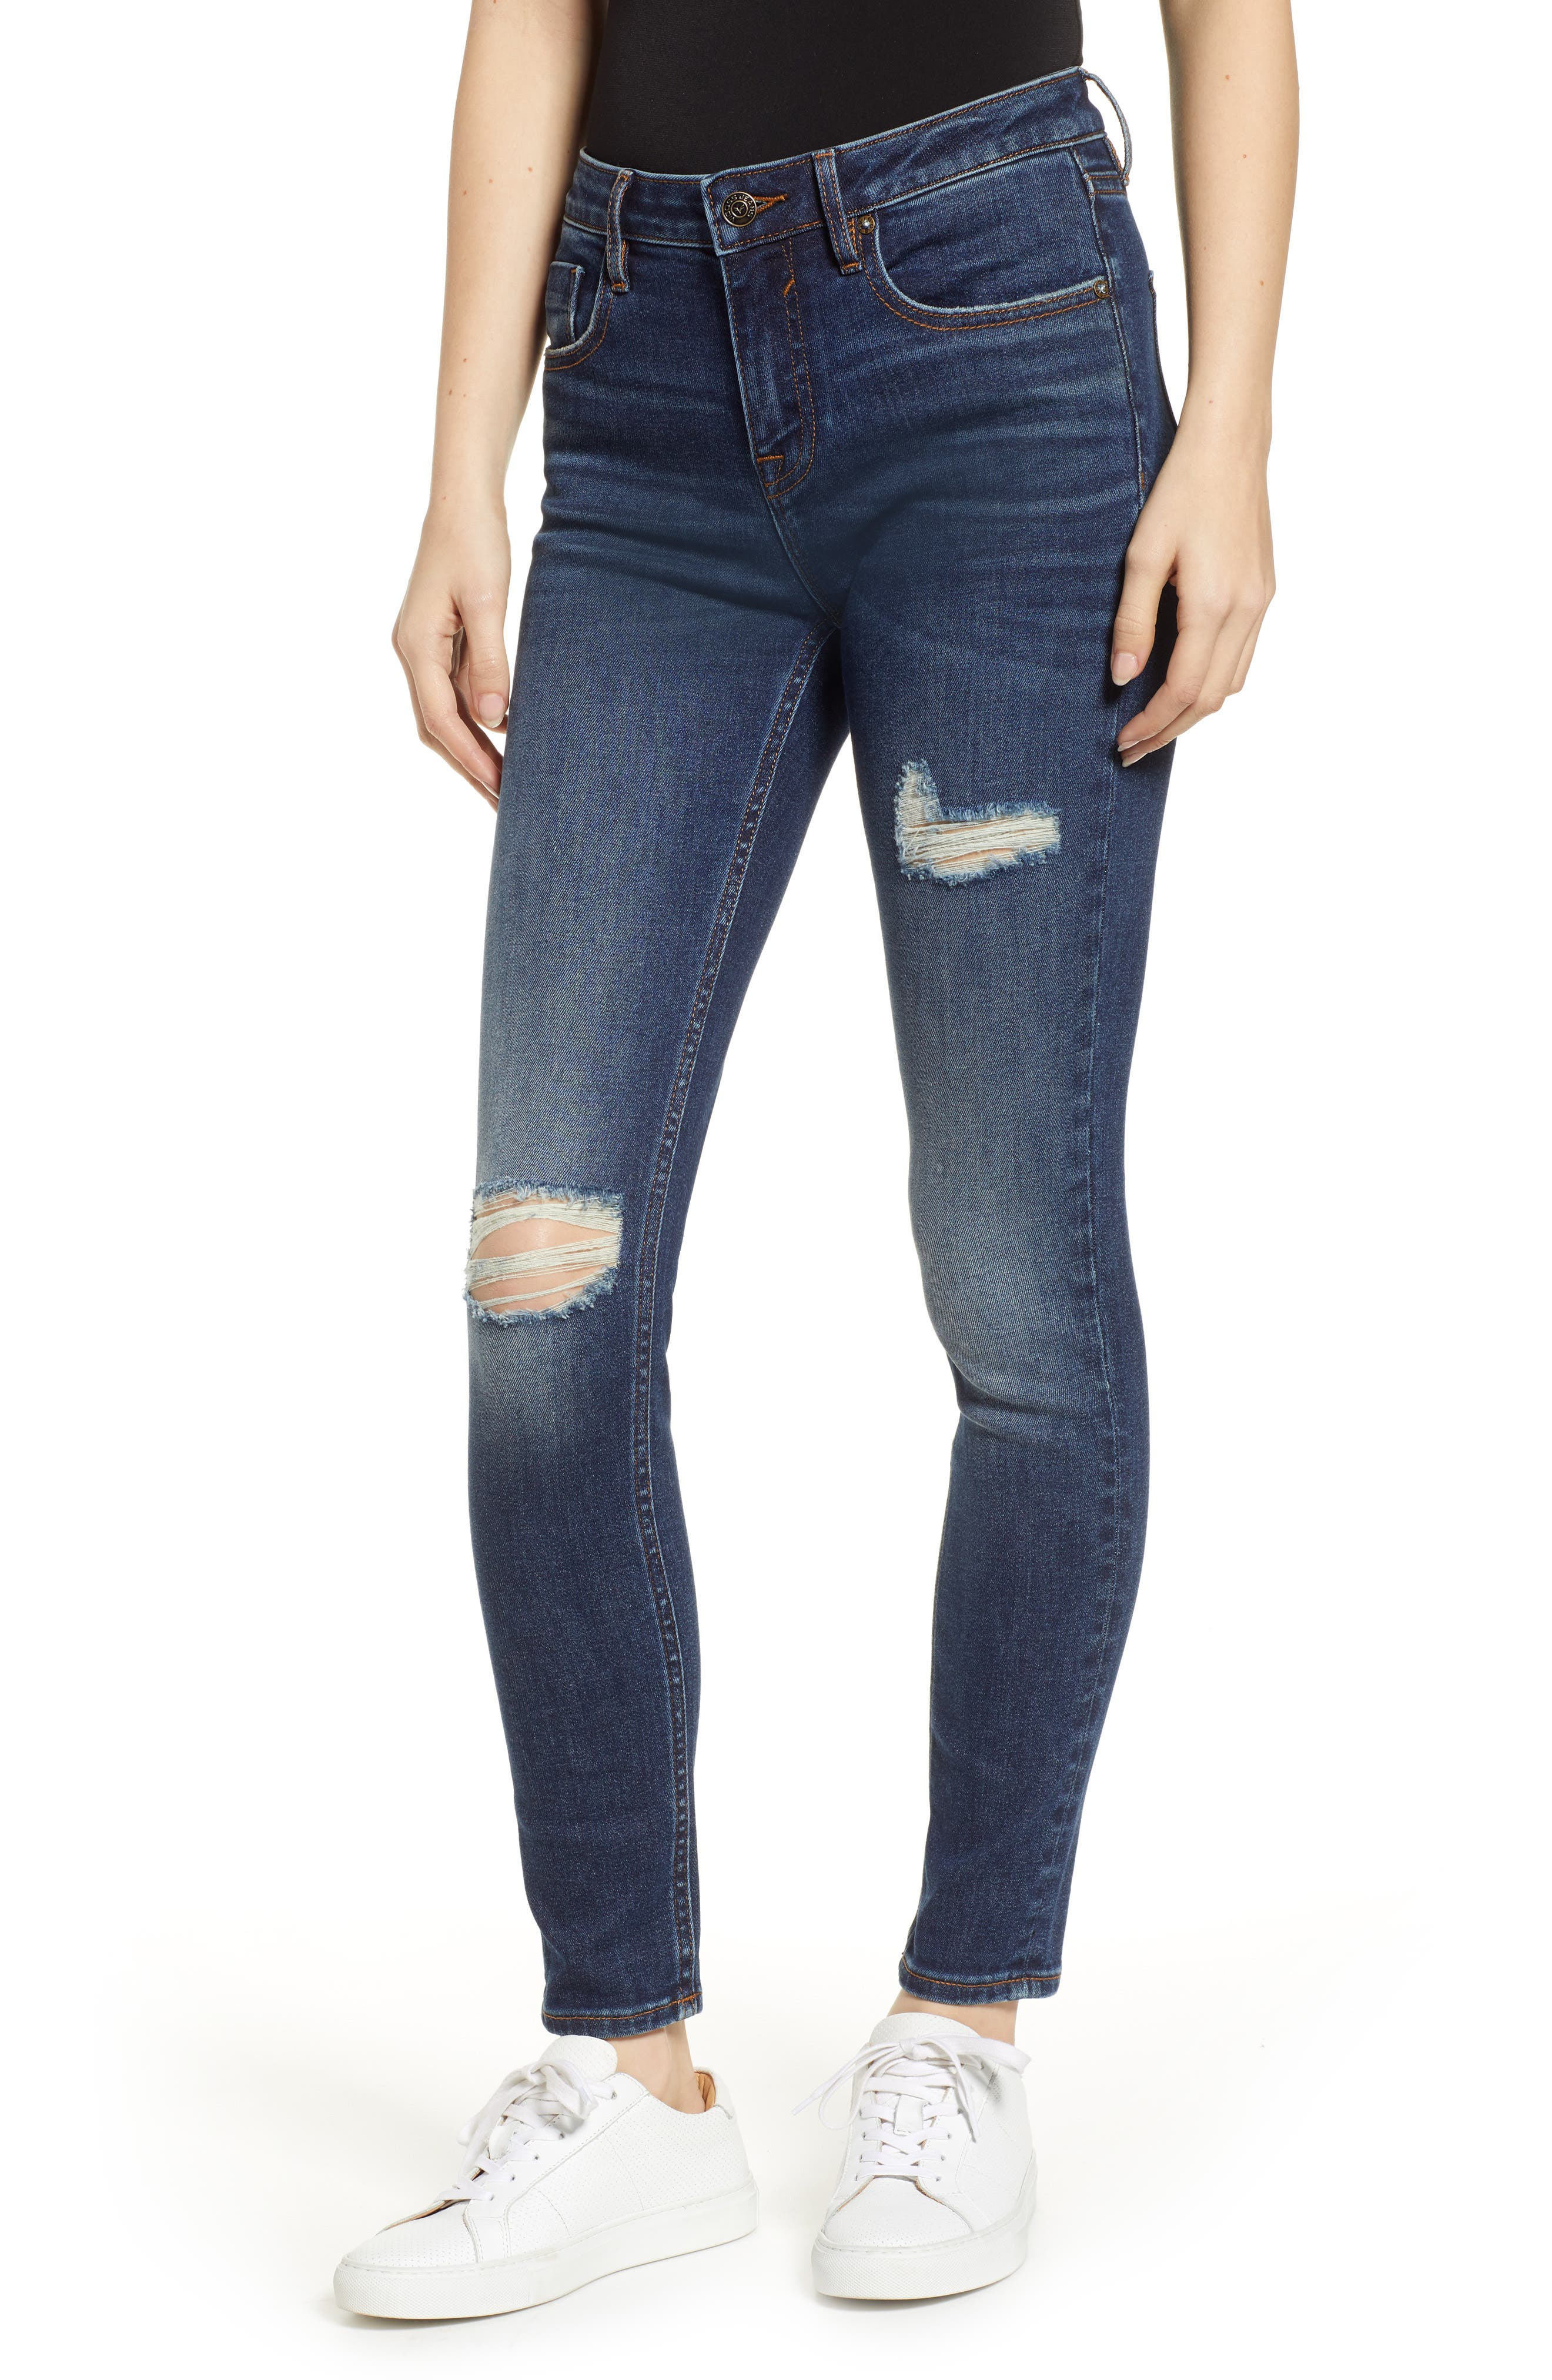 Marley Ripped Skinny Jeans,                             Main thumbnail 1, color,                             DARK WASH